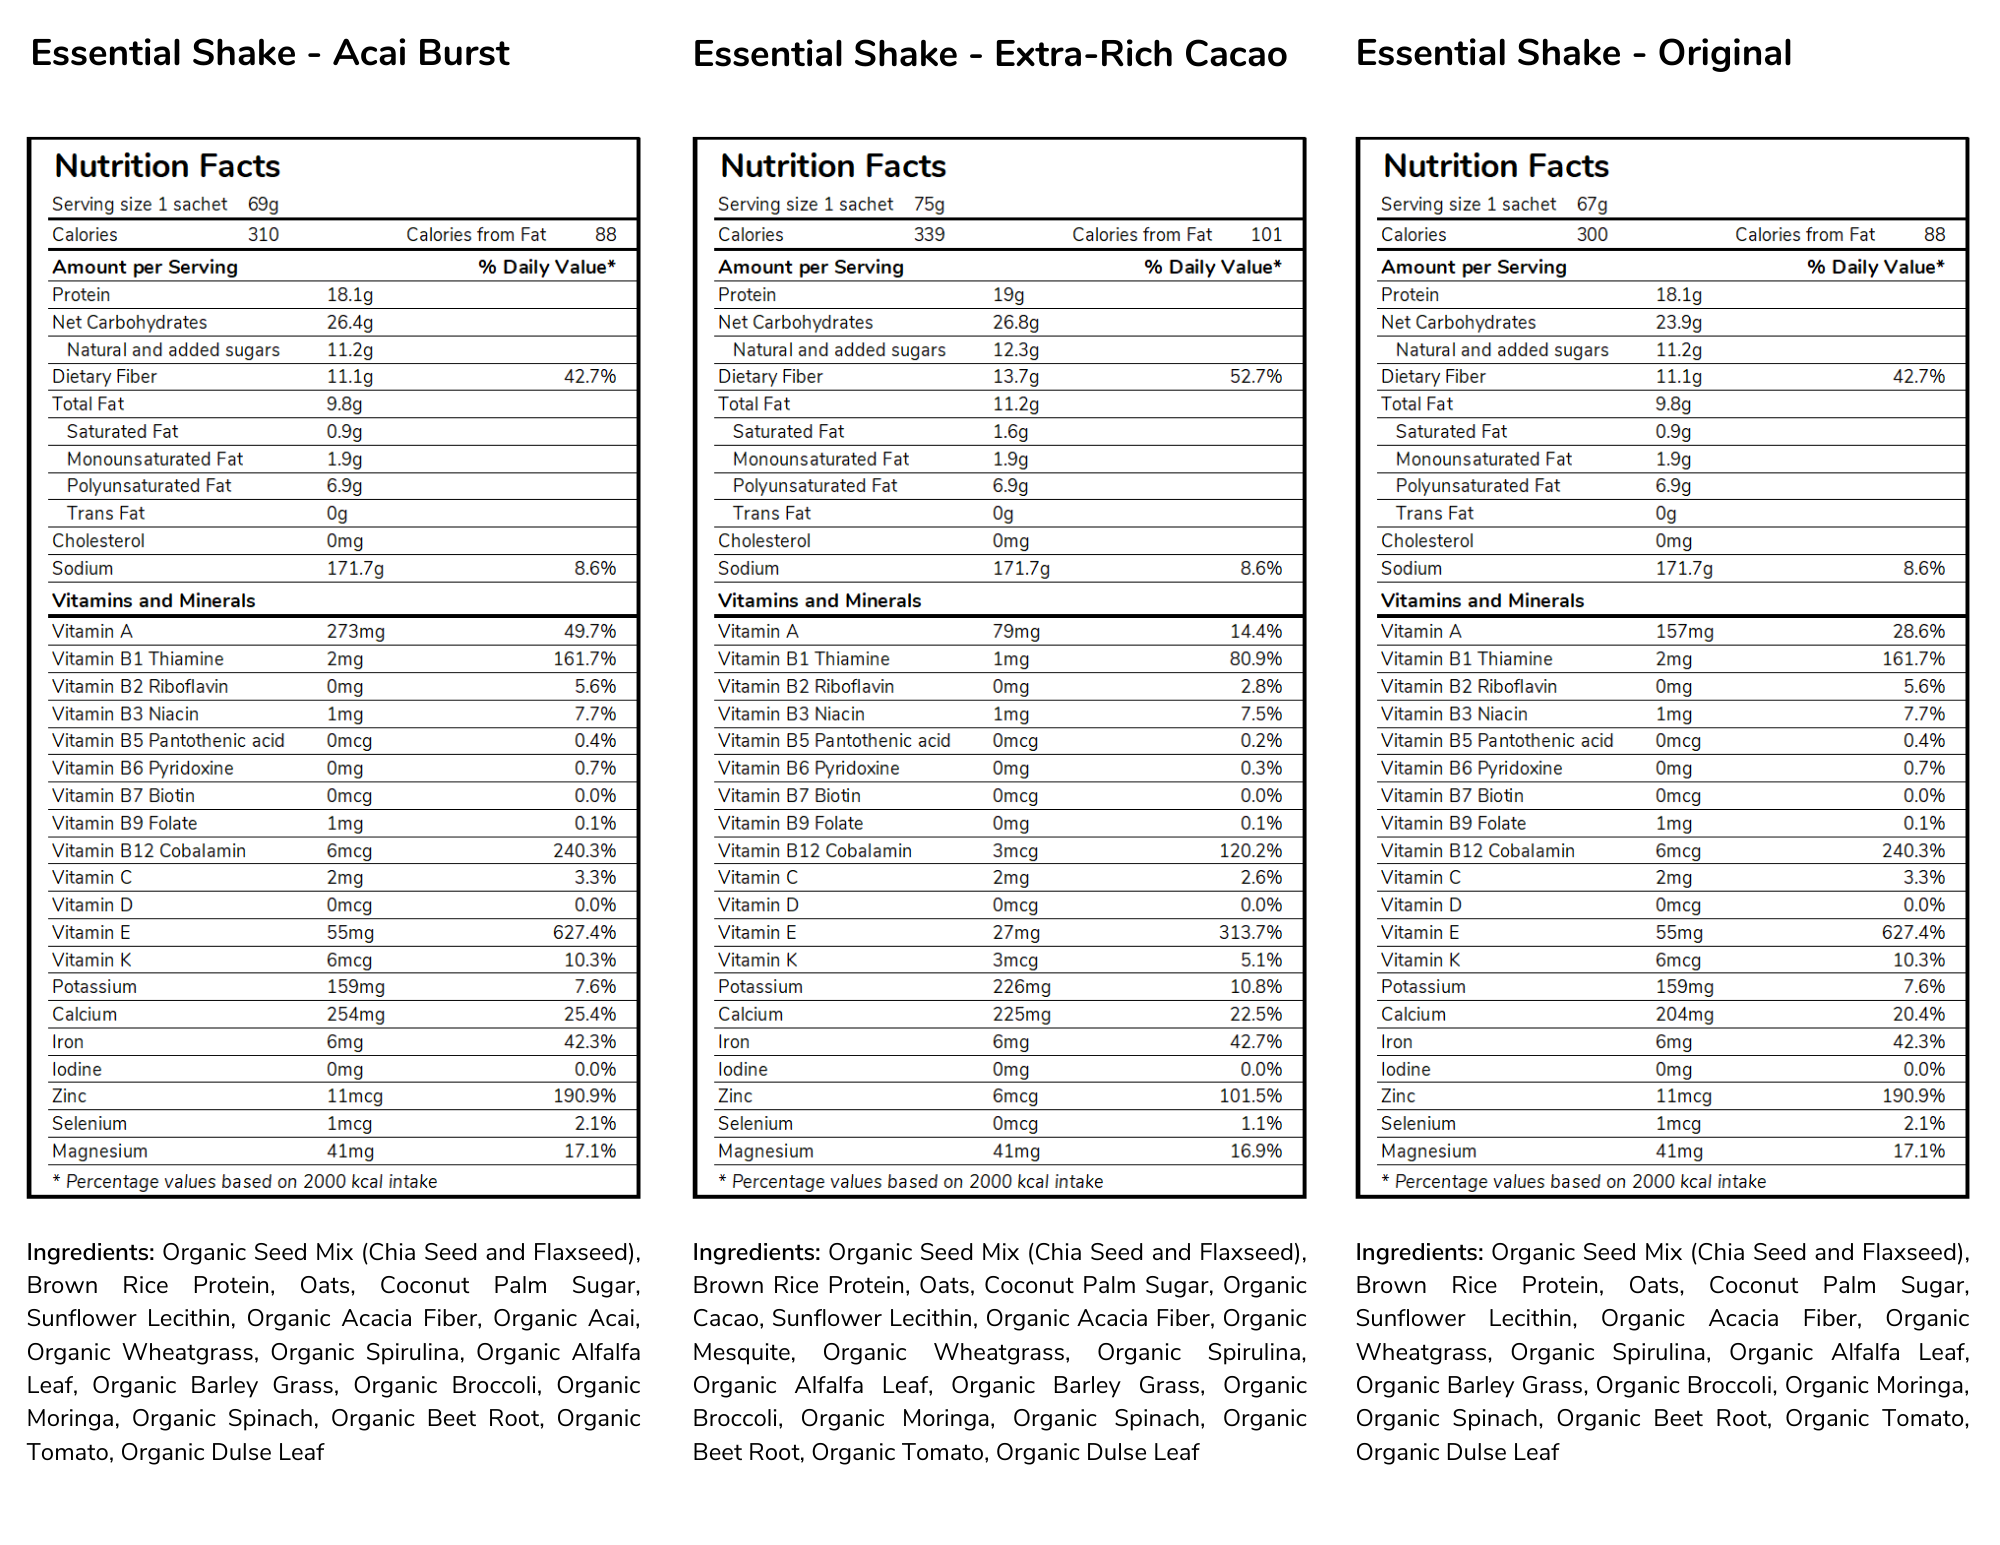 Essential meal replacement shakes nutritional panel